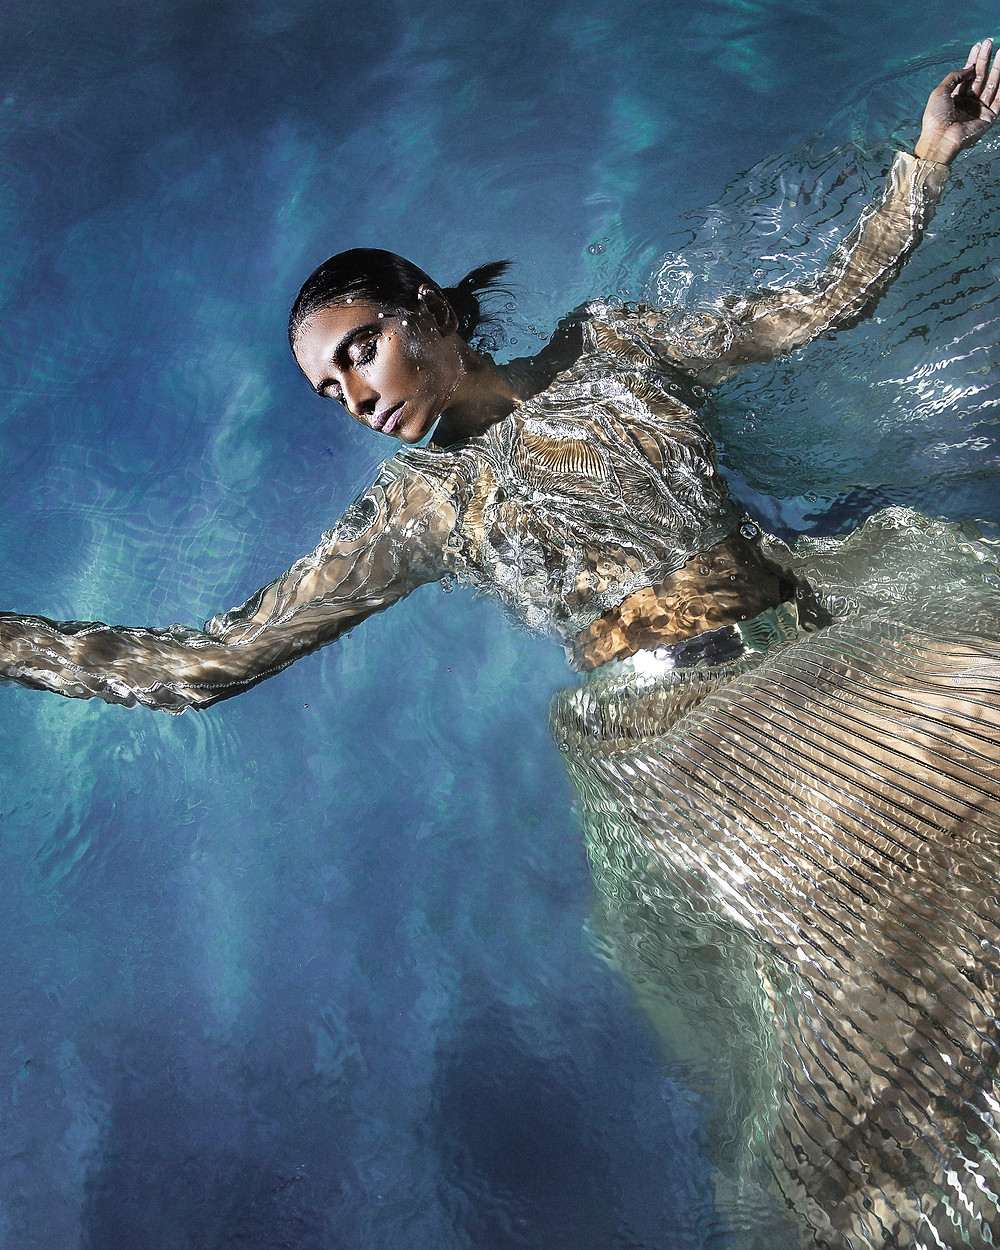 illusions underwater for Aggarwal's fashion film